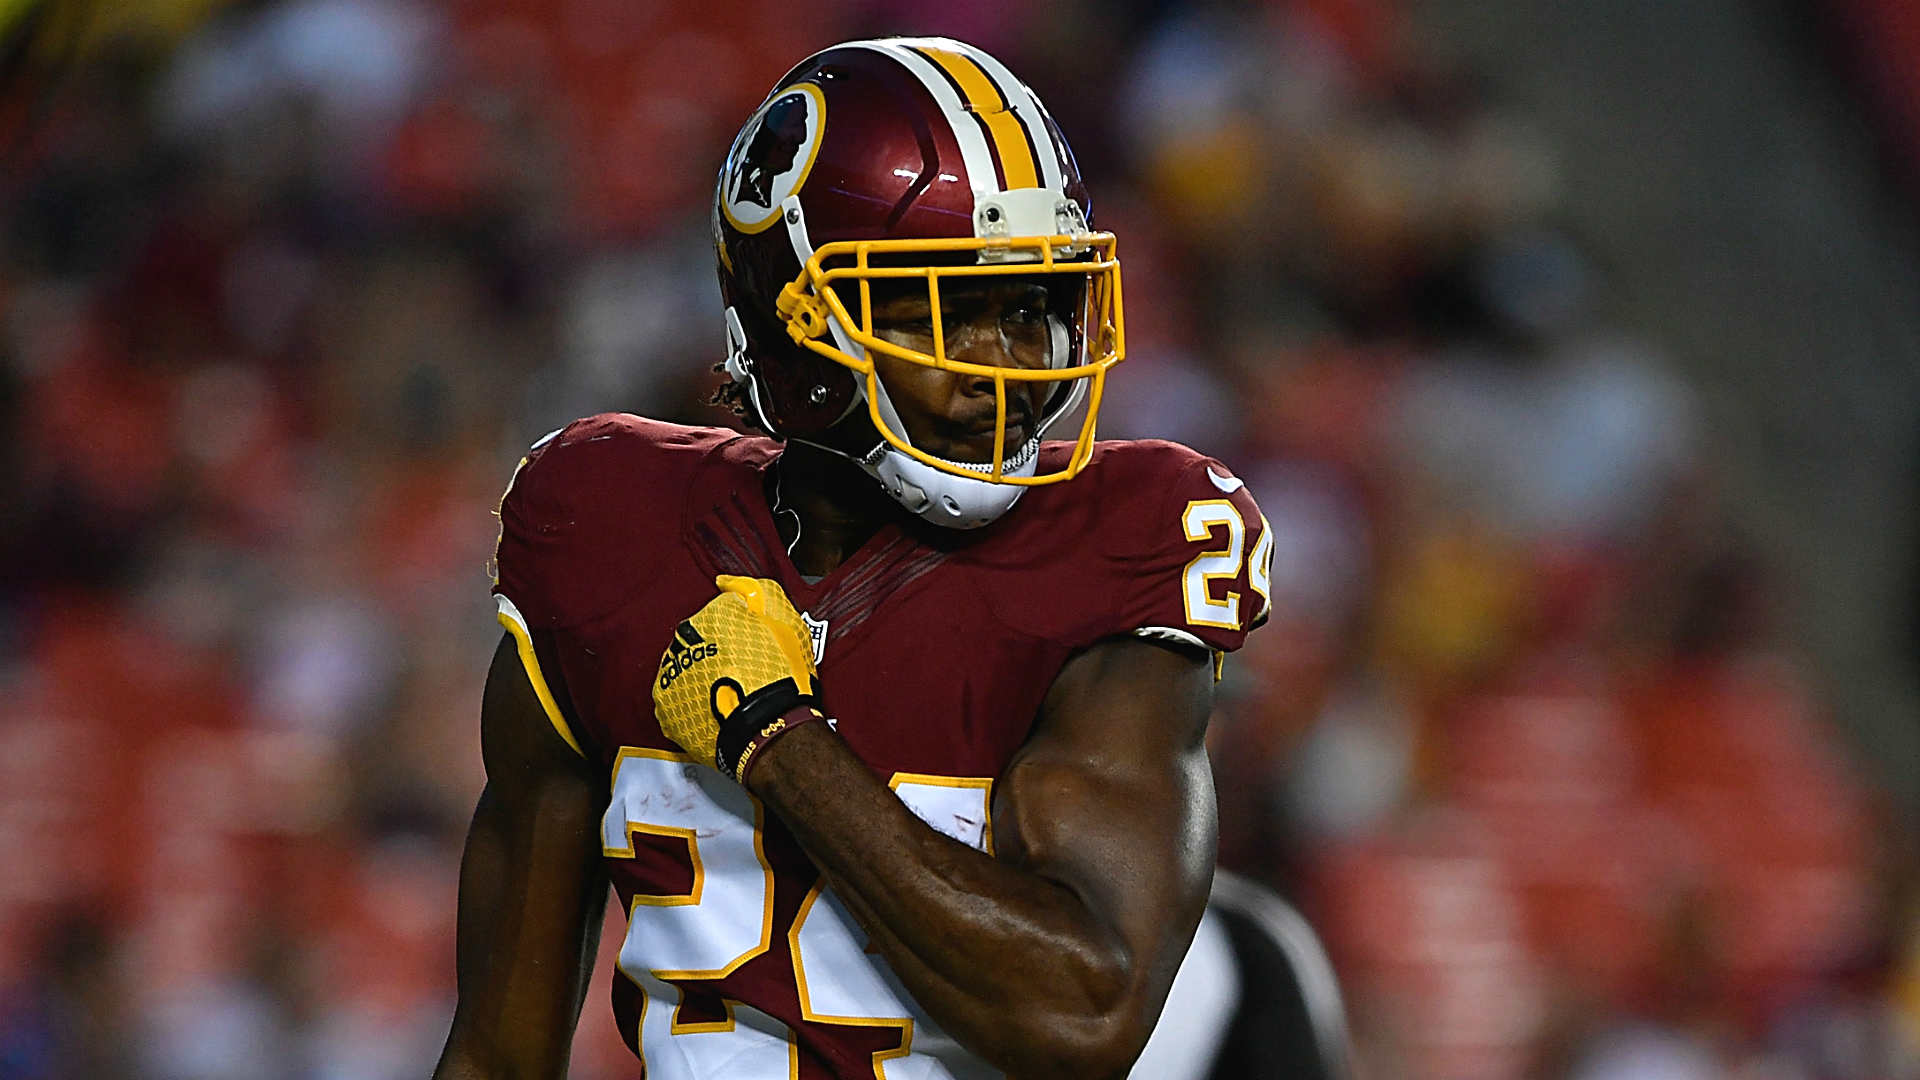 Redskins CB Josh Norman ruled out Monday night